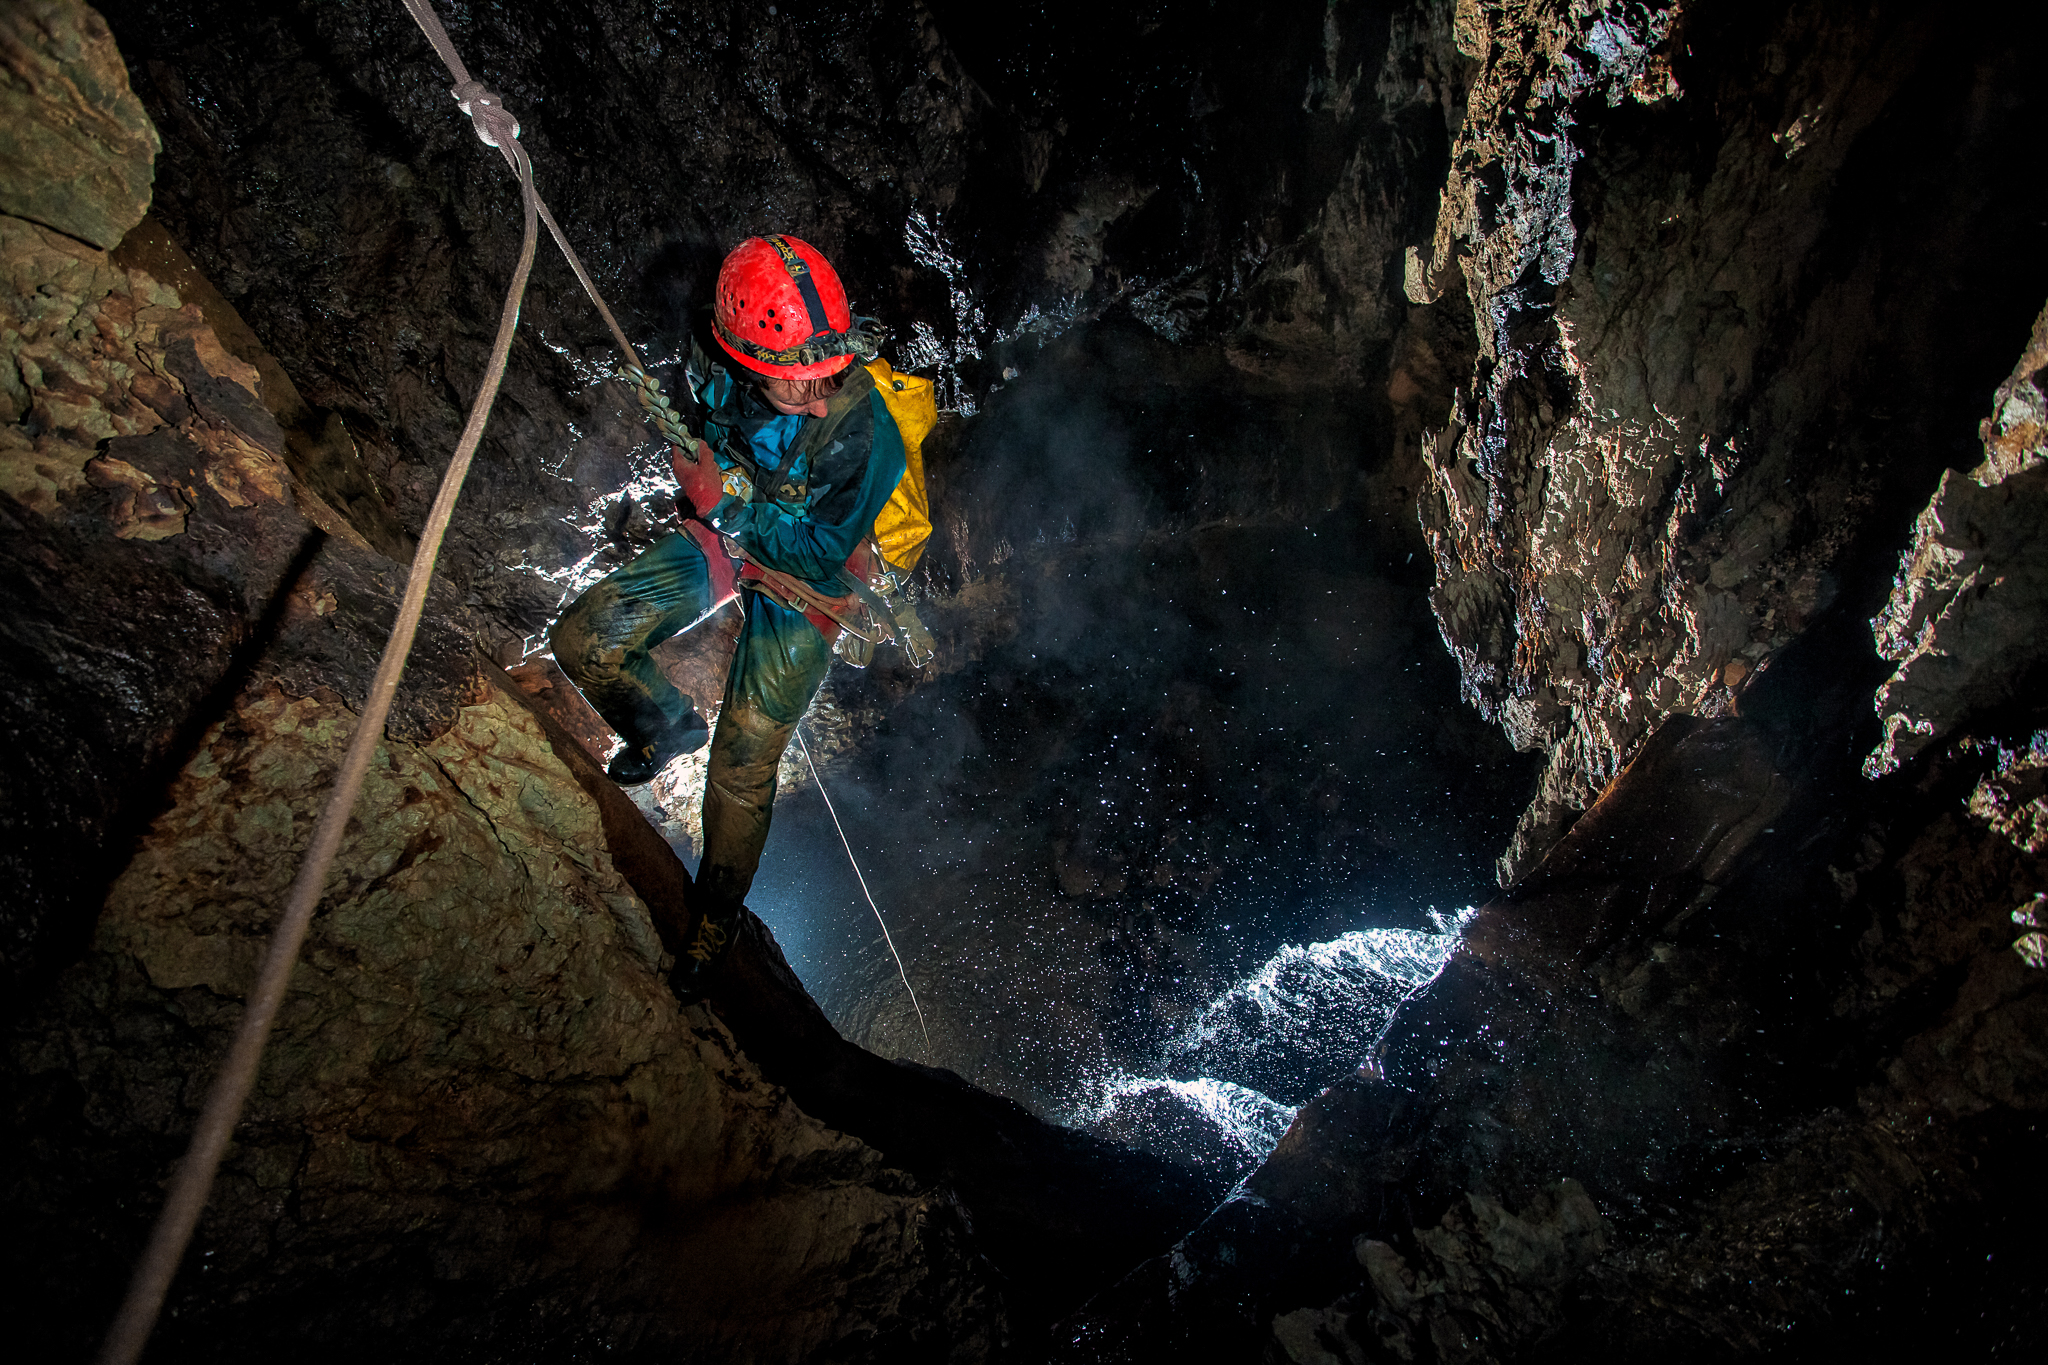 05_KasiaBiernacka_Caves_Mexico_Cheve_SurpriseStreamLead_1_2017.jpg